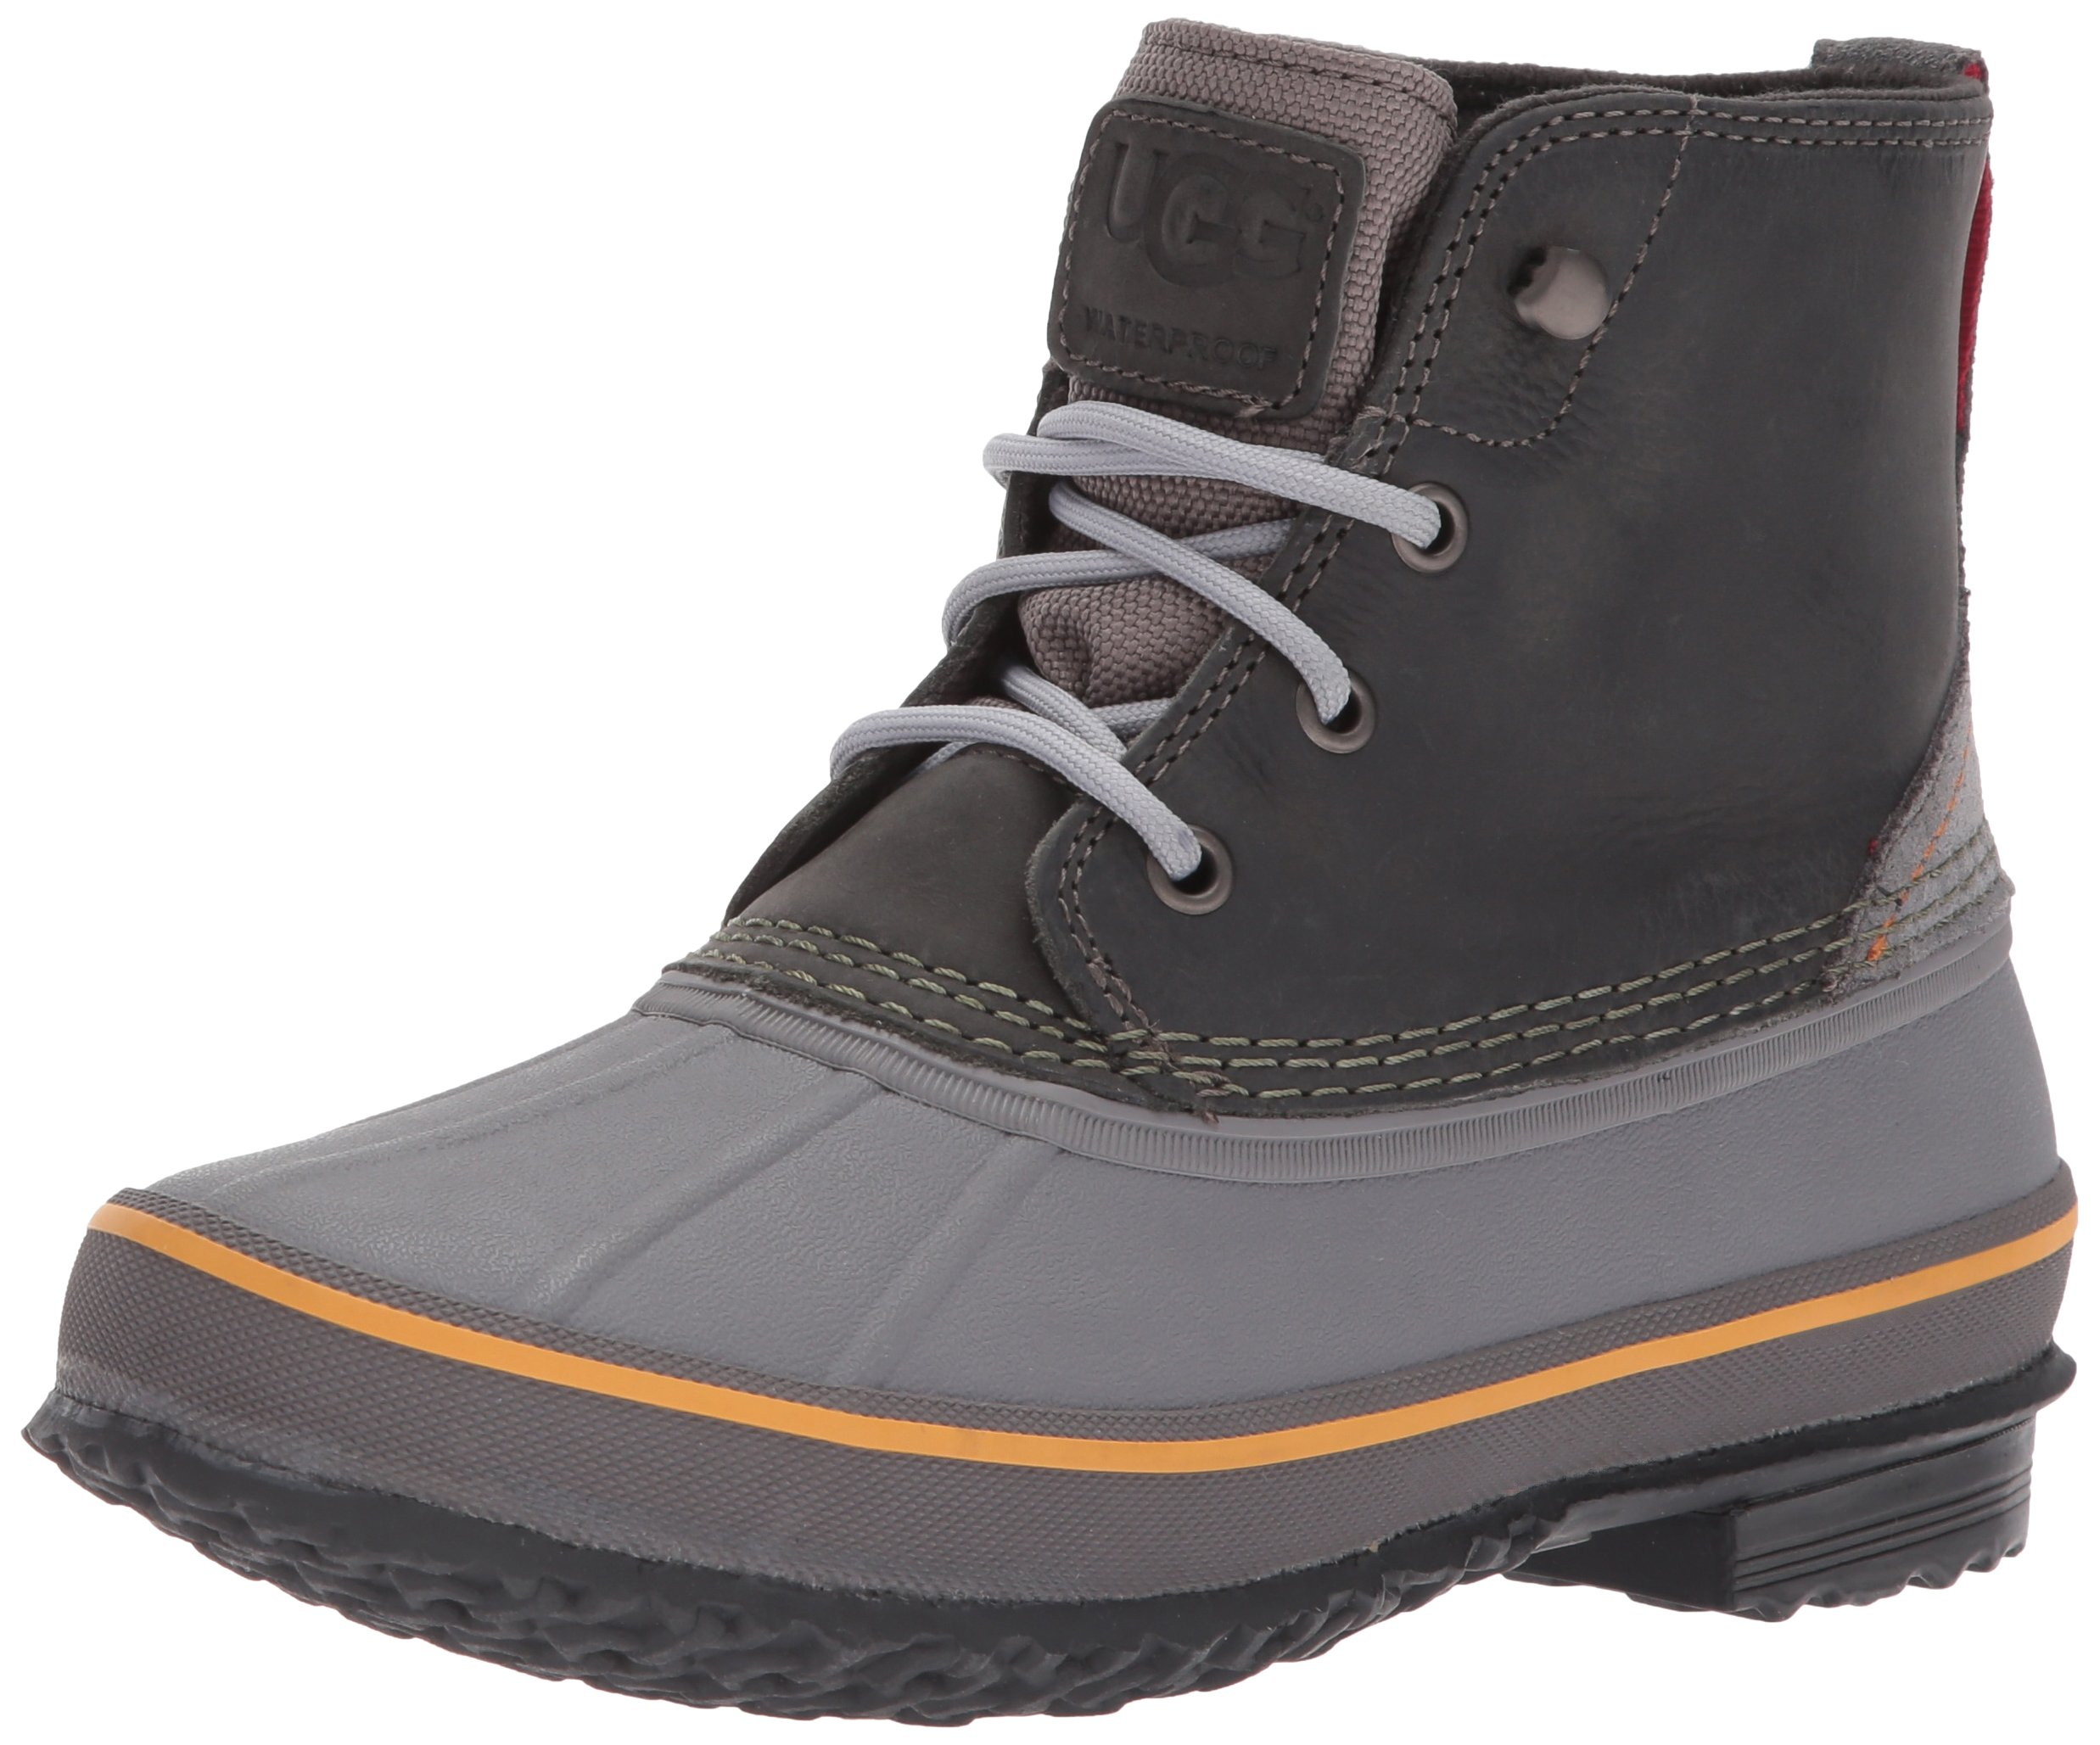 UGG Men's Zetik Winter Boot, Metal, 10 M US by UGG